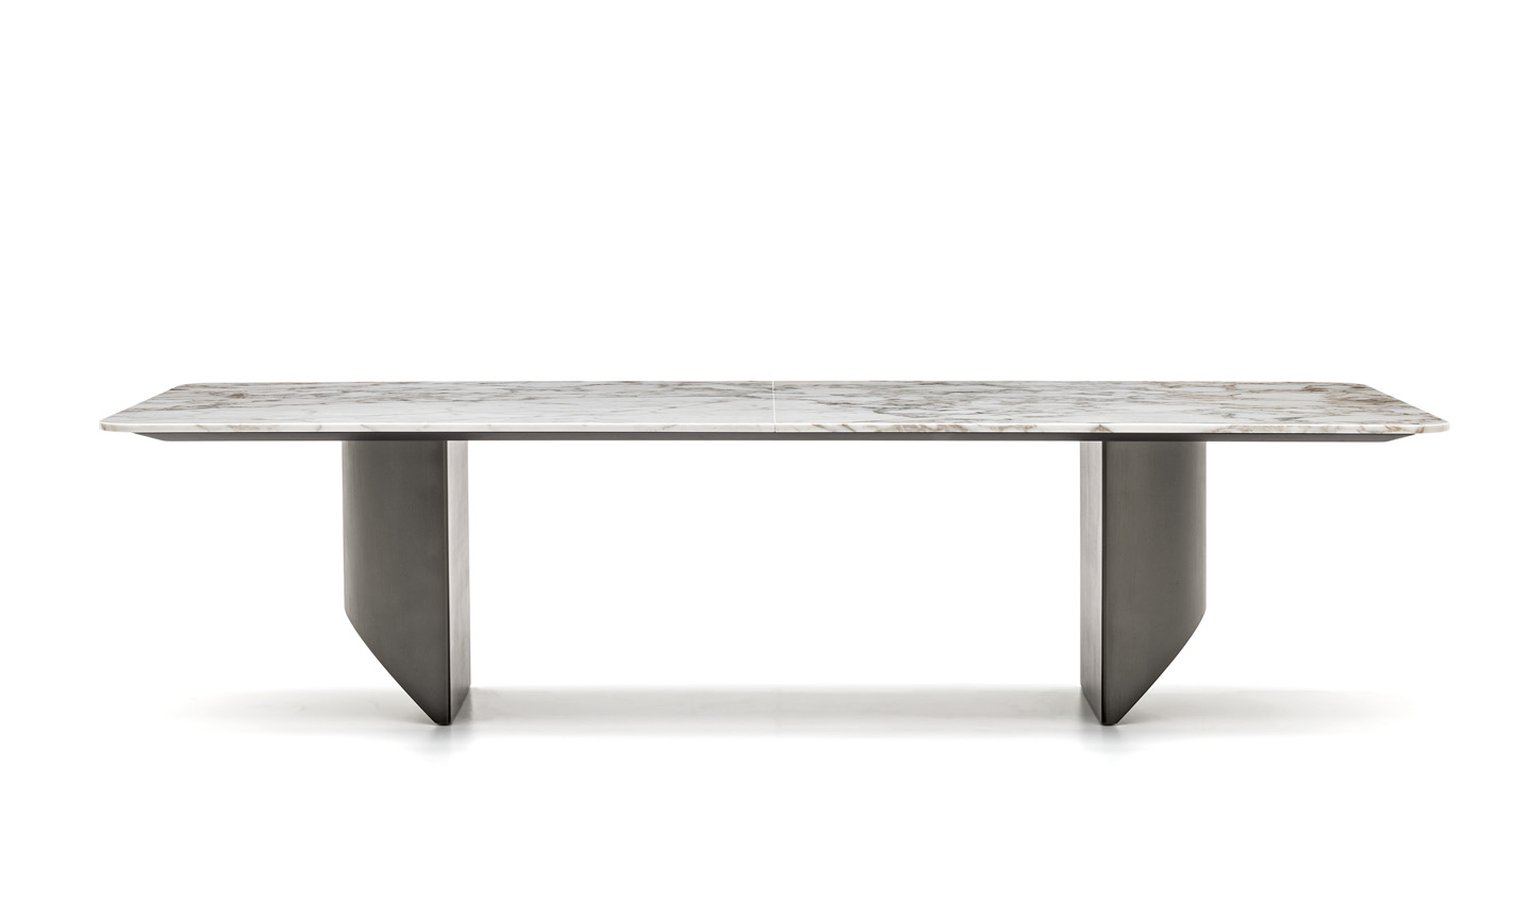 Wedge Dining Table By Minotti Ecc